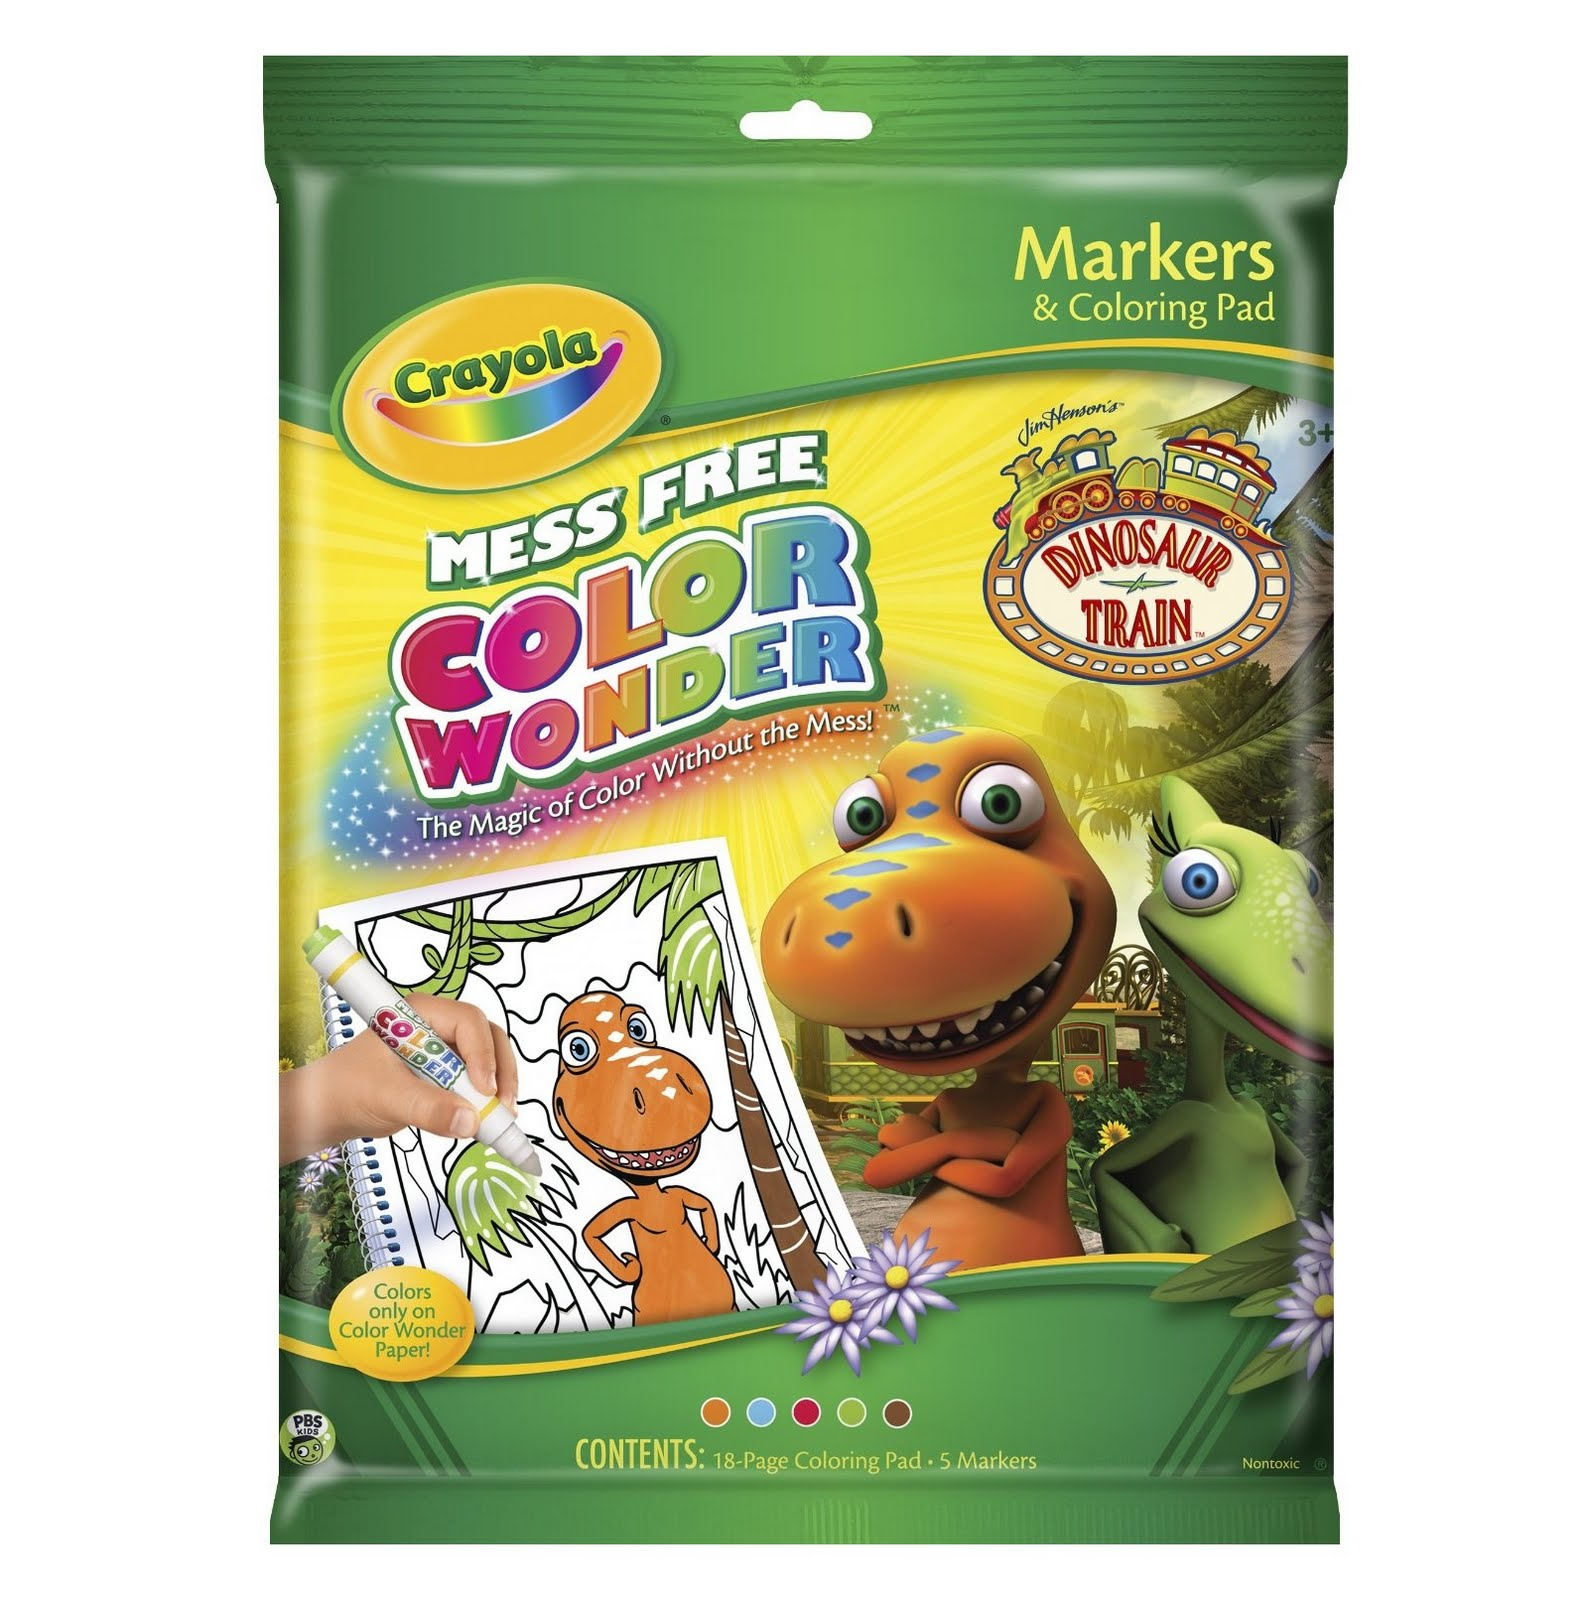 Dinosaur Train Apatosaurus Color Wonder